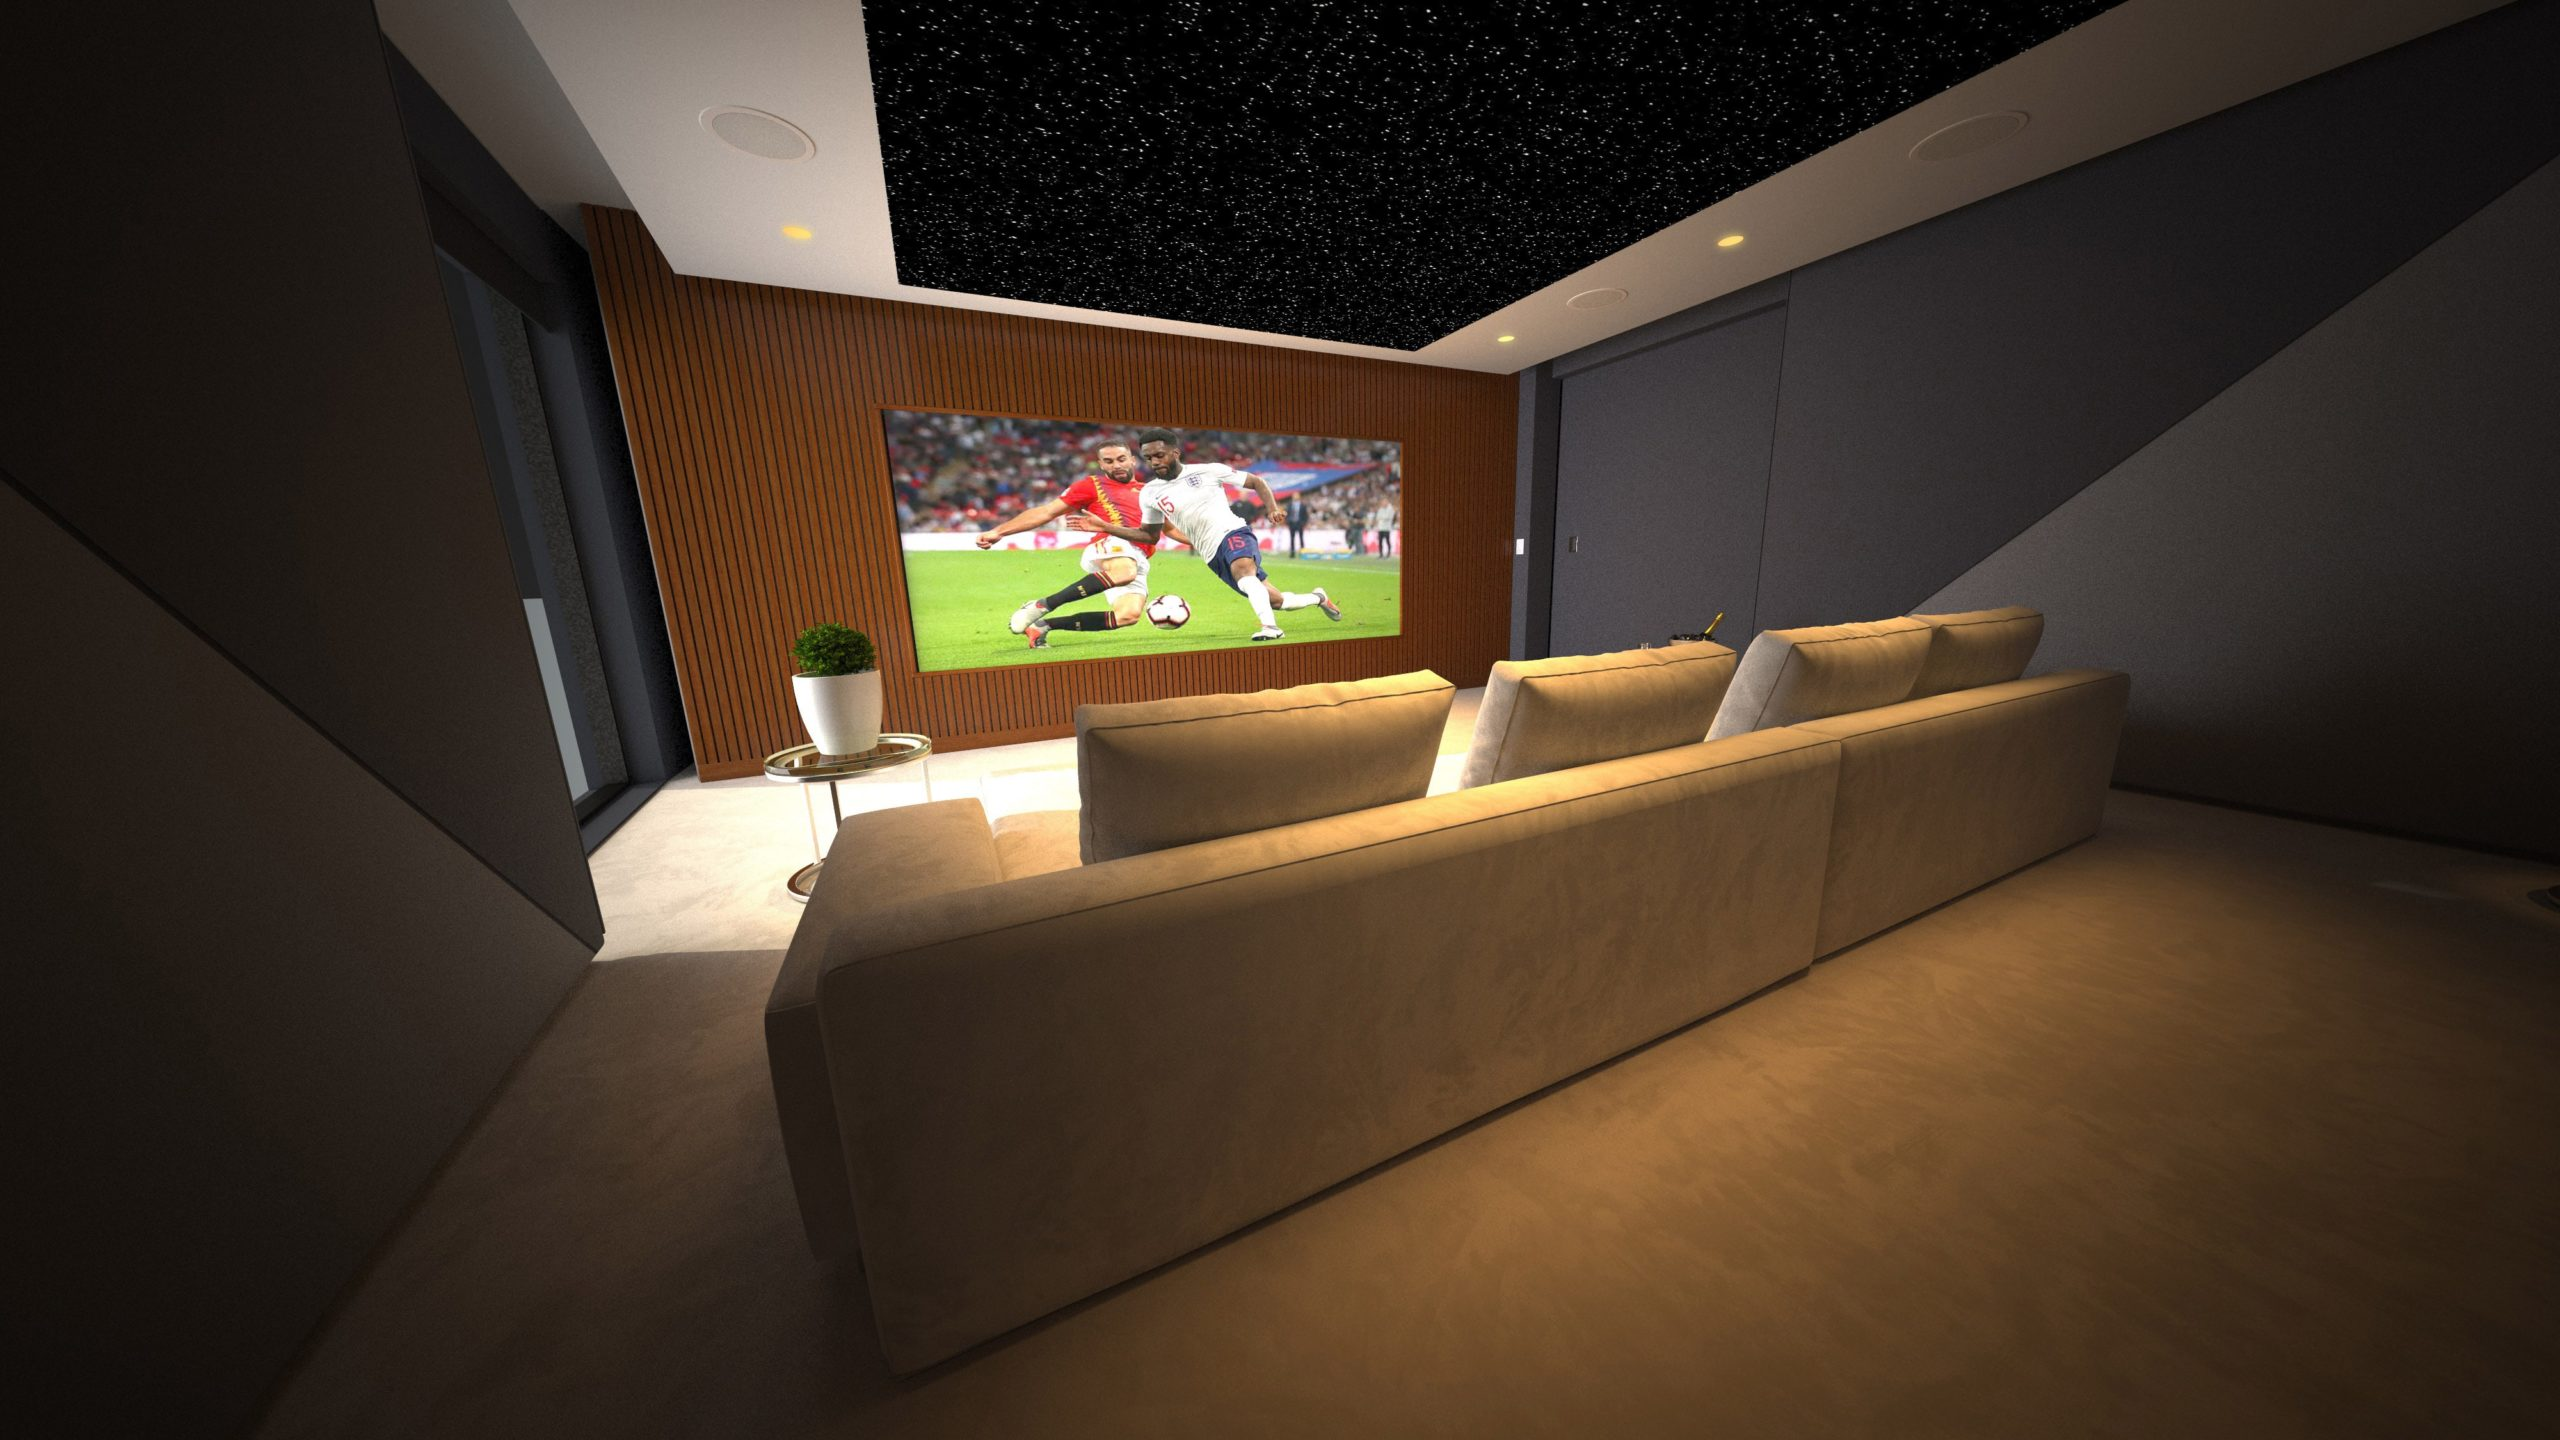 Paco cinema room